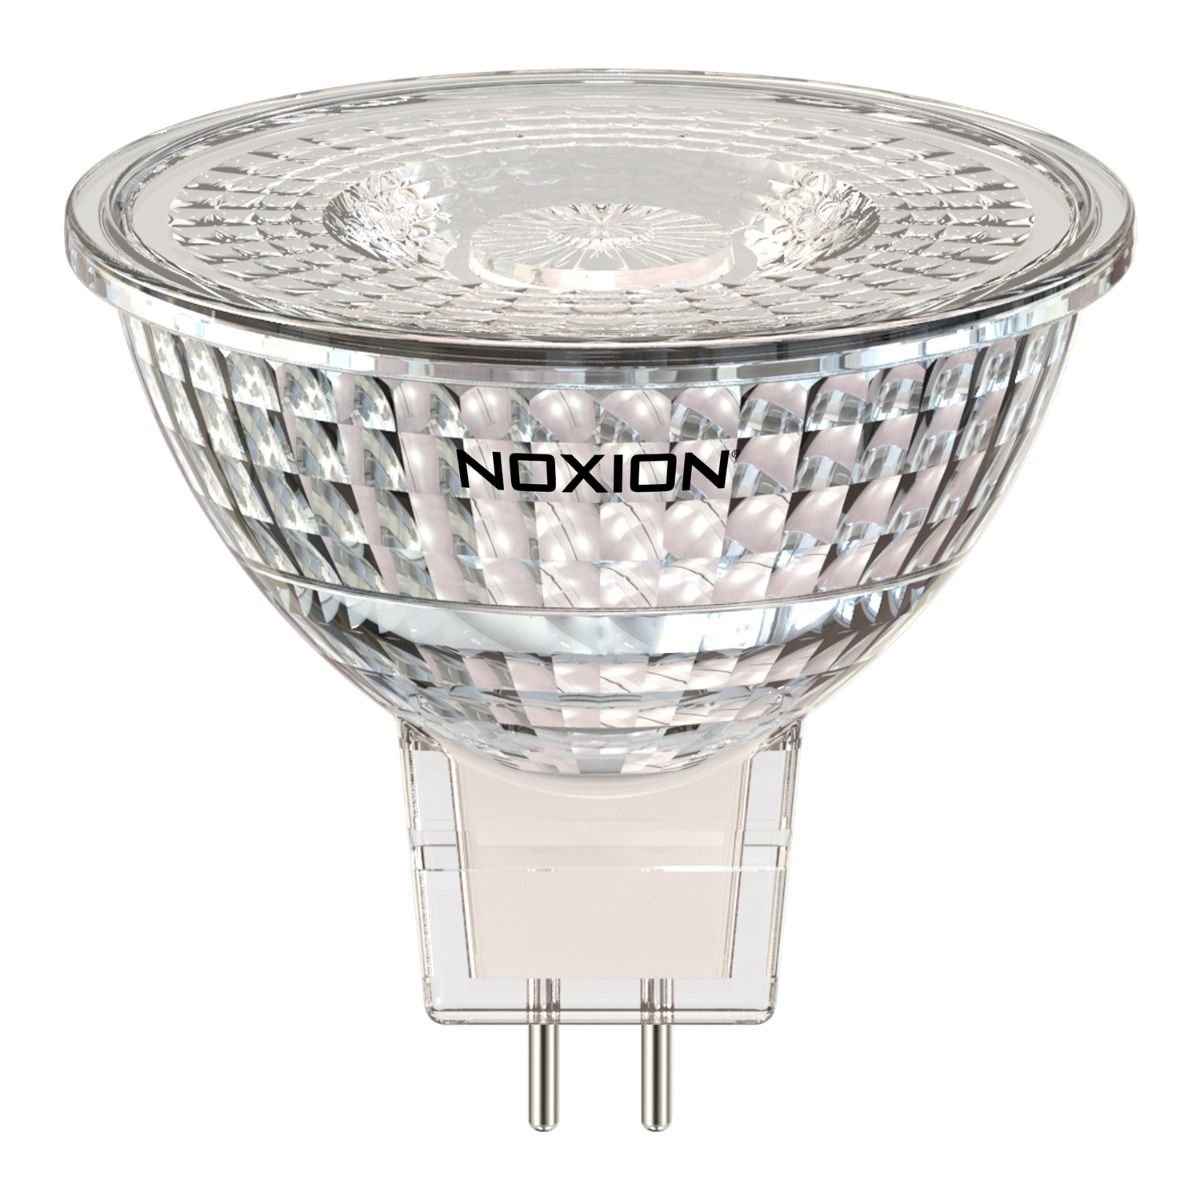 Noxion LED Spot GU5.3 5W 830 36D 470lm | Dimmable - Replacer for 35W